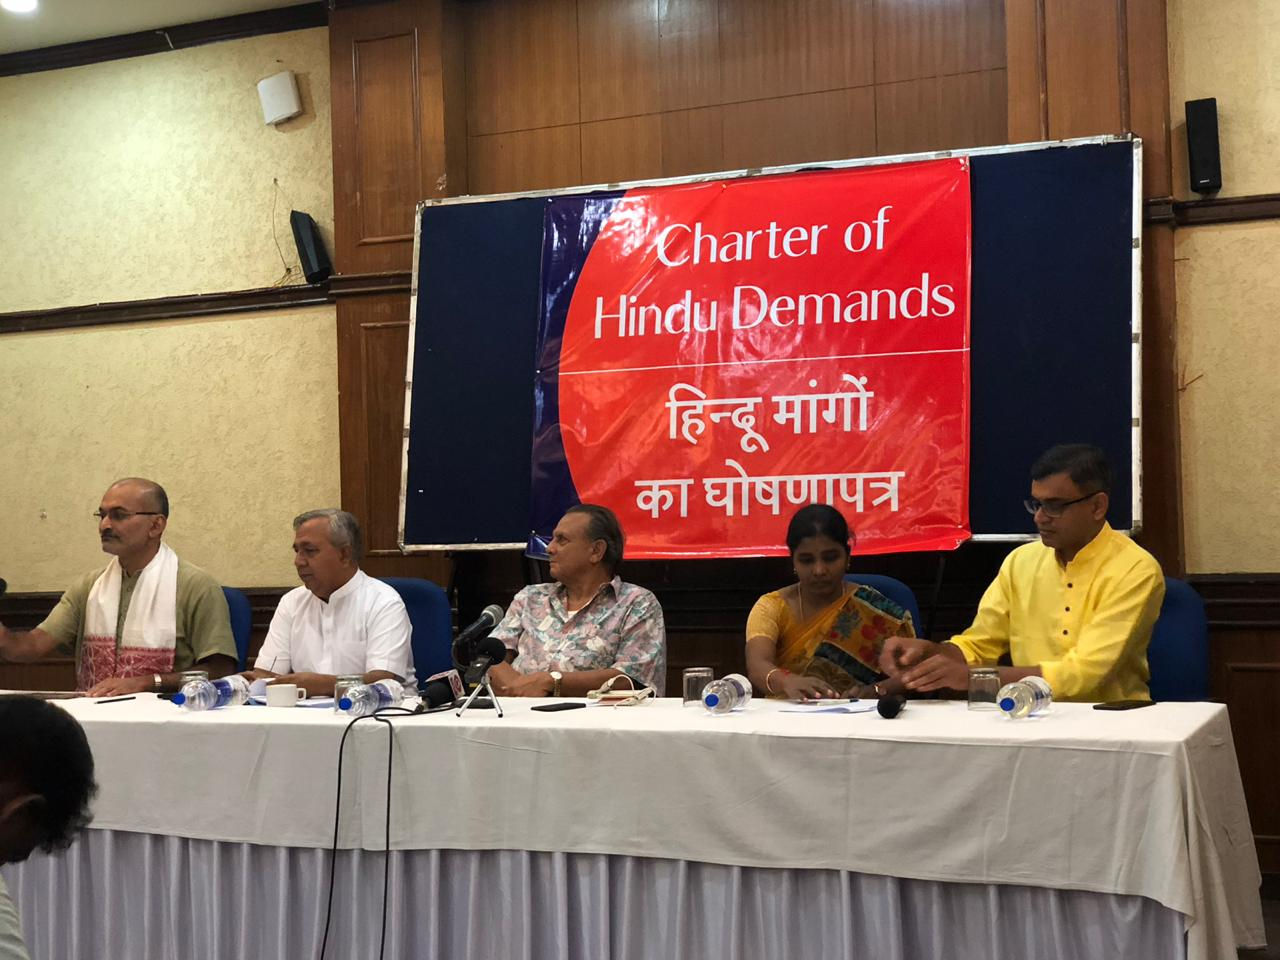 Concerned Hindus demand end of institutionalized discrimination against Hindus